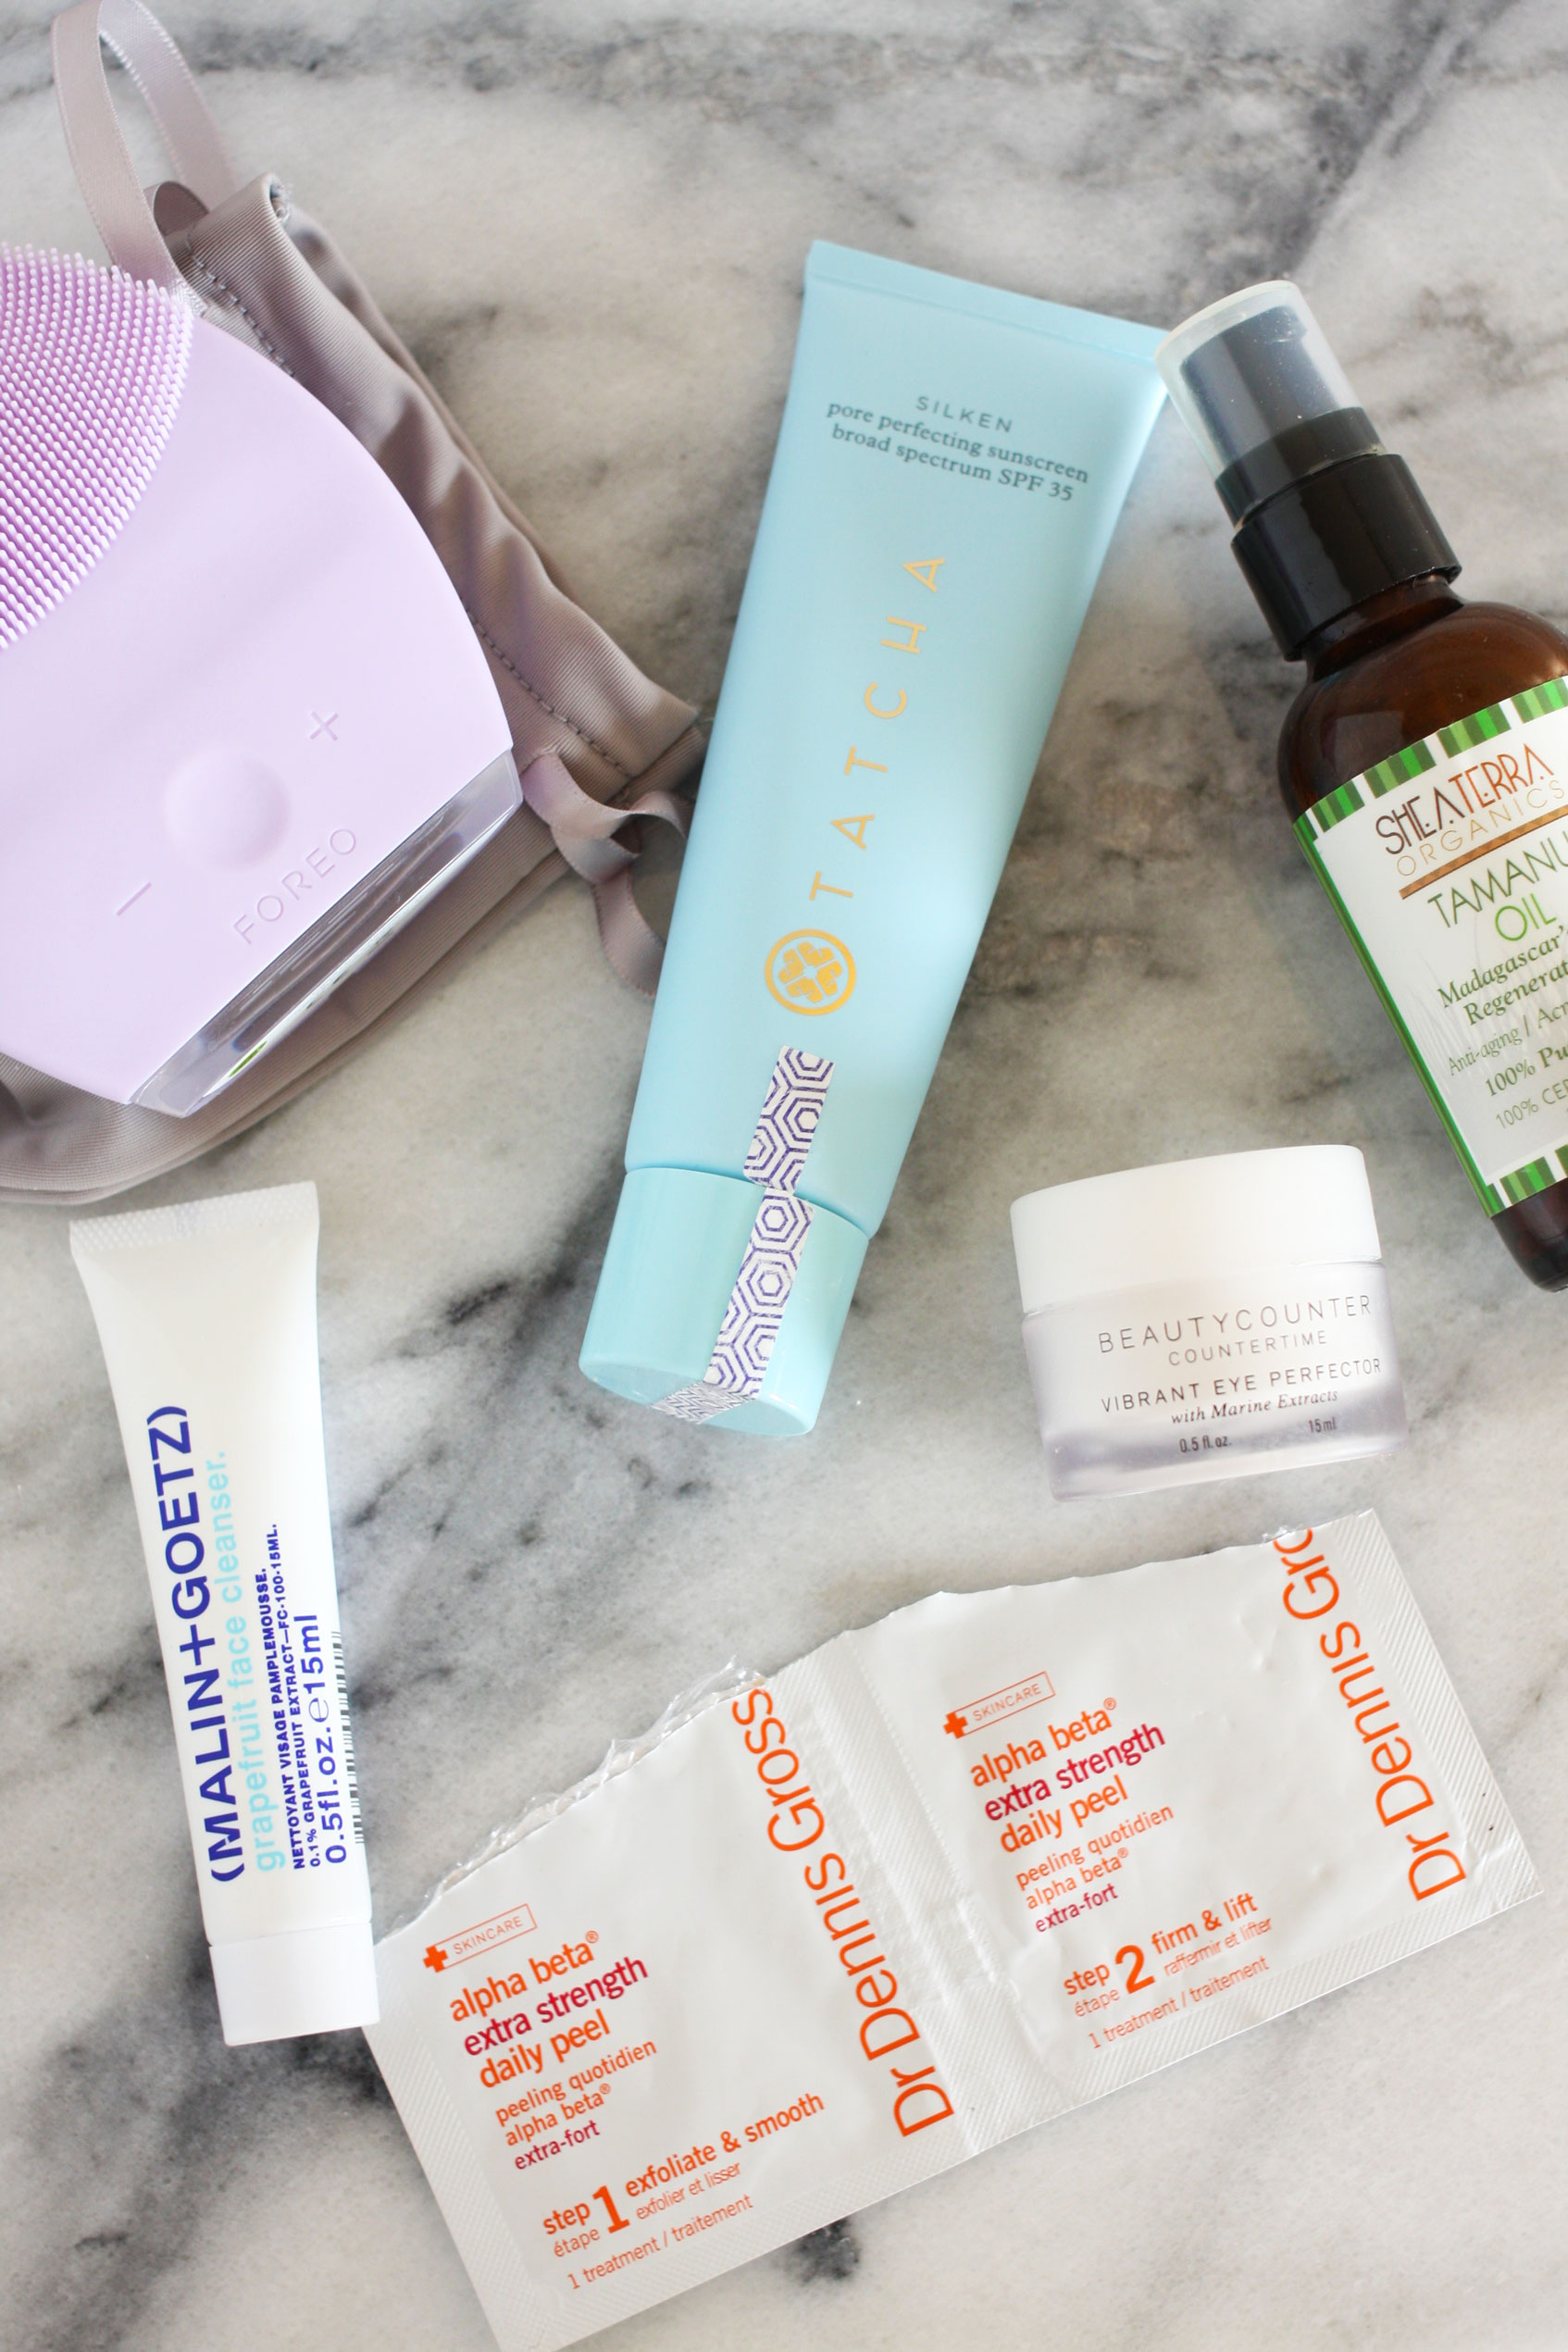 My Natural Skincare Routine // After struggling with acne ever since I can remember, and a particularly bad year of severe acne, I started taking medicine and switched all my products to more natural options. I'm sharing my daily skincare routine with you! #skin #acne #natural #beauty #sponsored